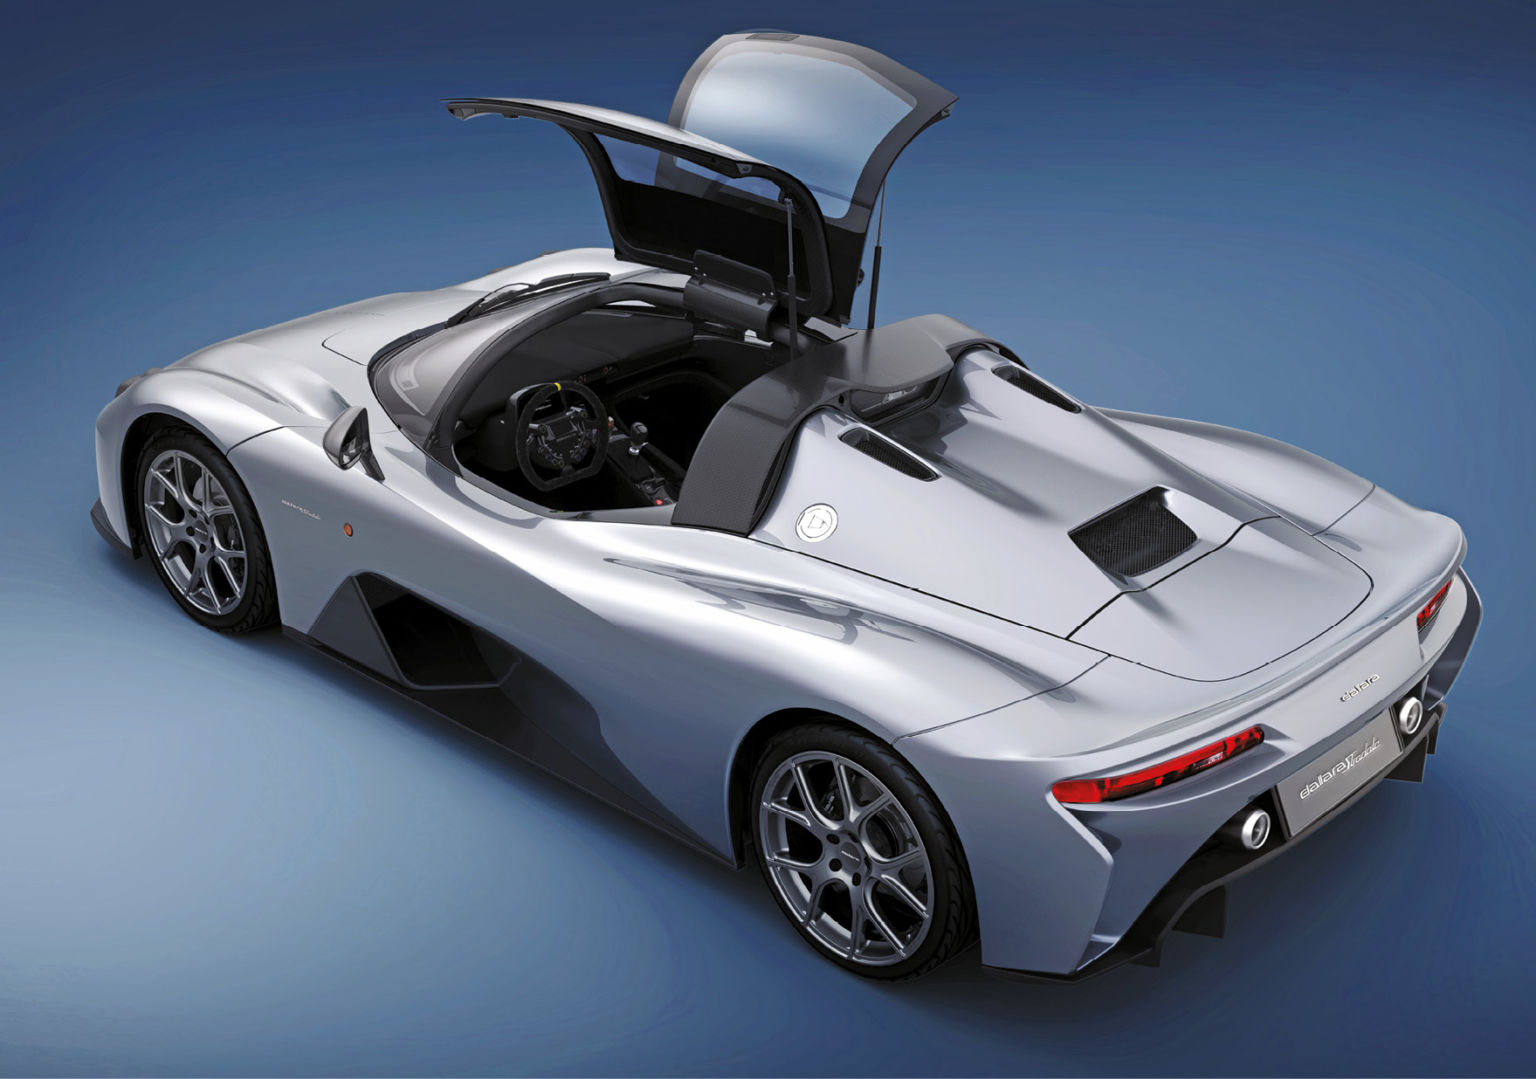 When not an open-topped roadster the Stradale can become a gull-winged coupe